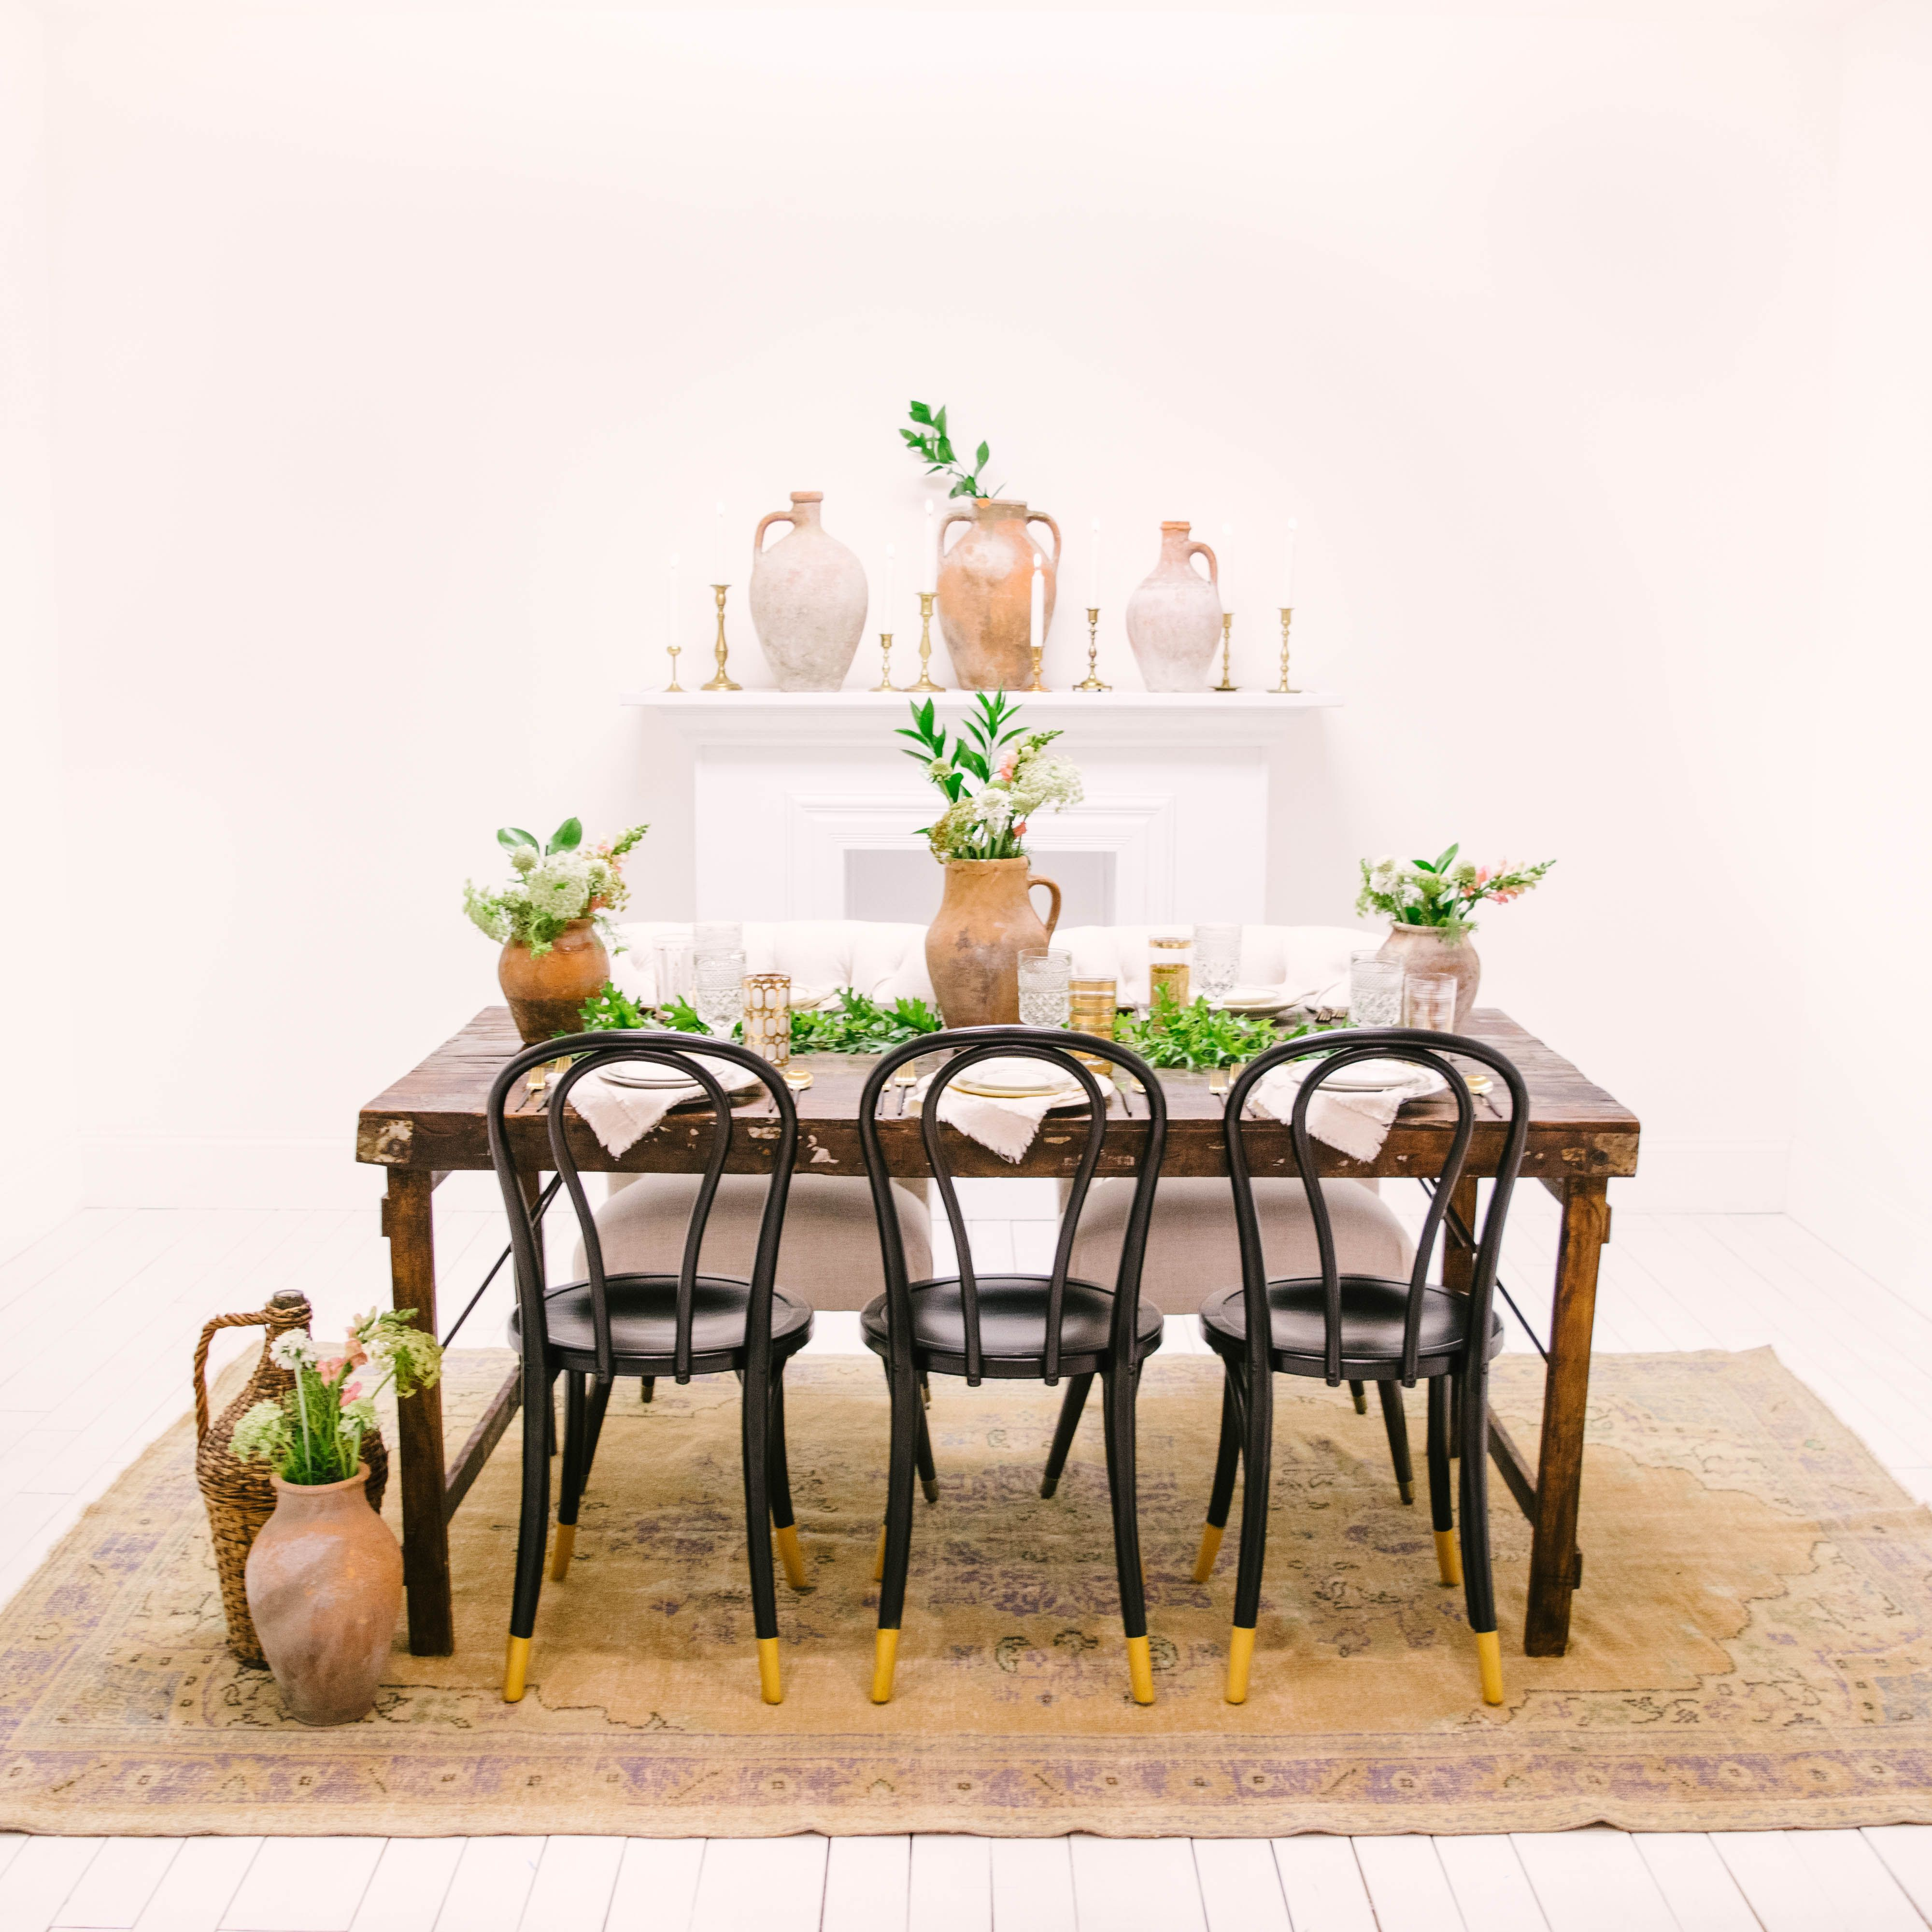 Surprising Reclaimed Wood Farm Table For Weddings And Corporate Events Interior Design Ideas Gentotthenellocom